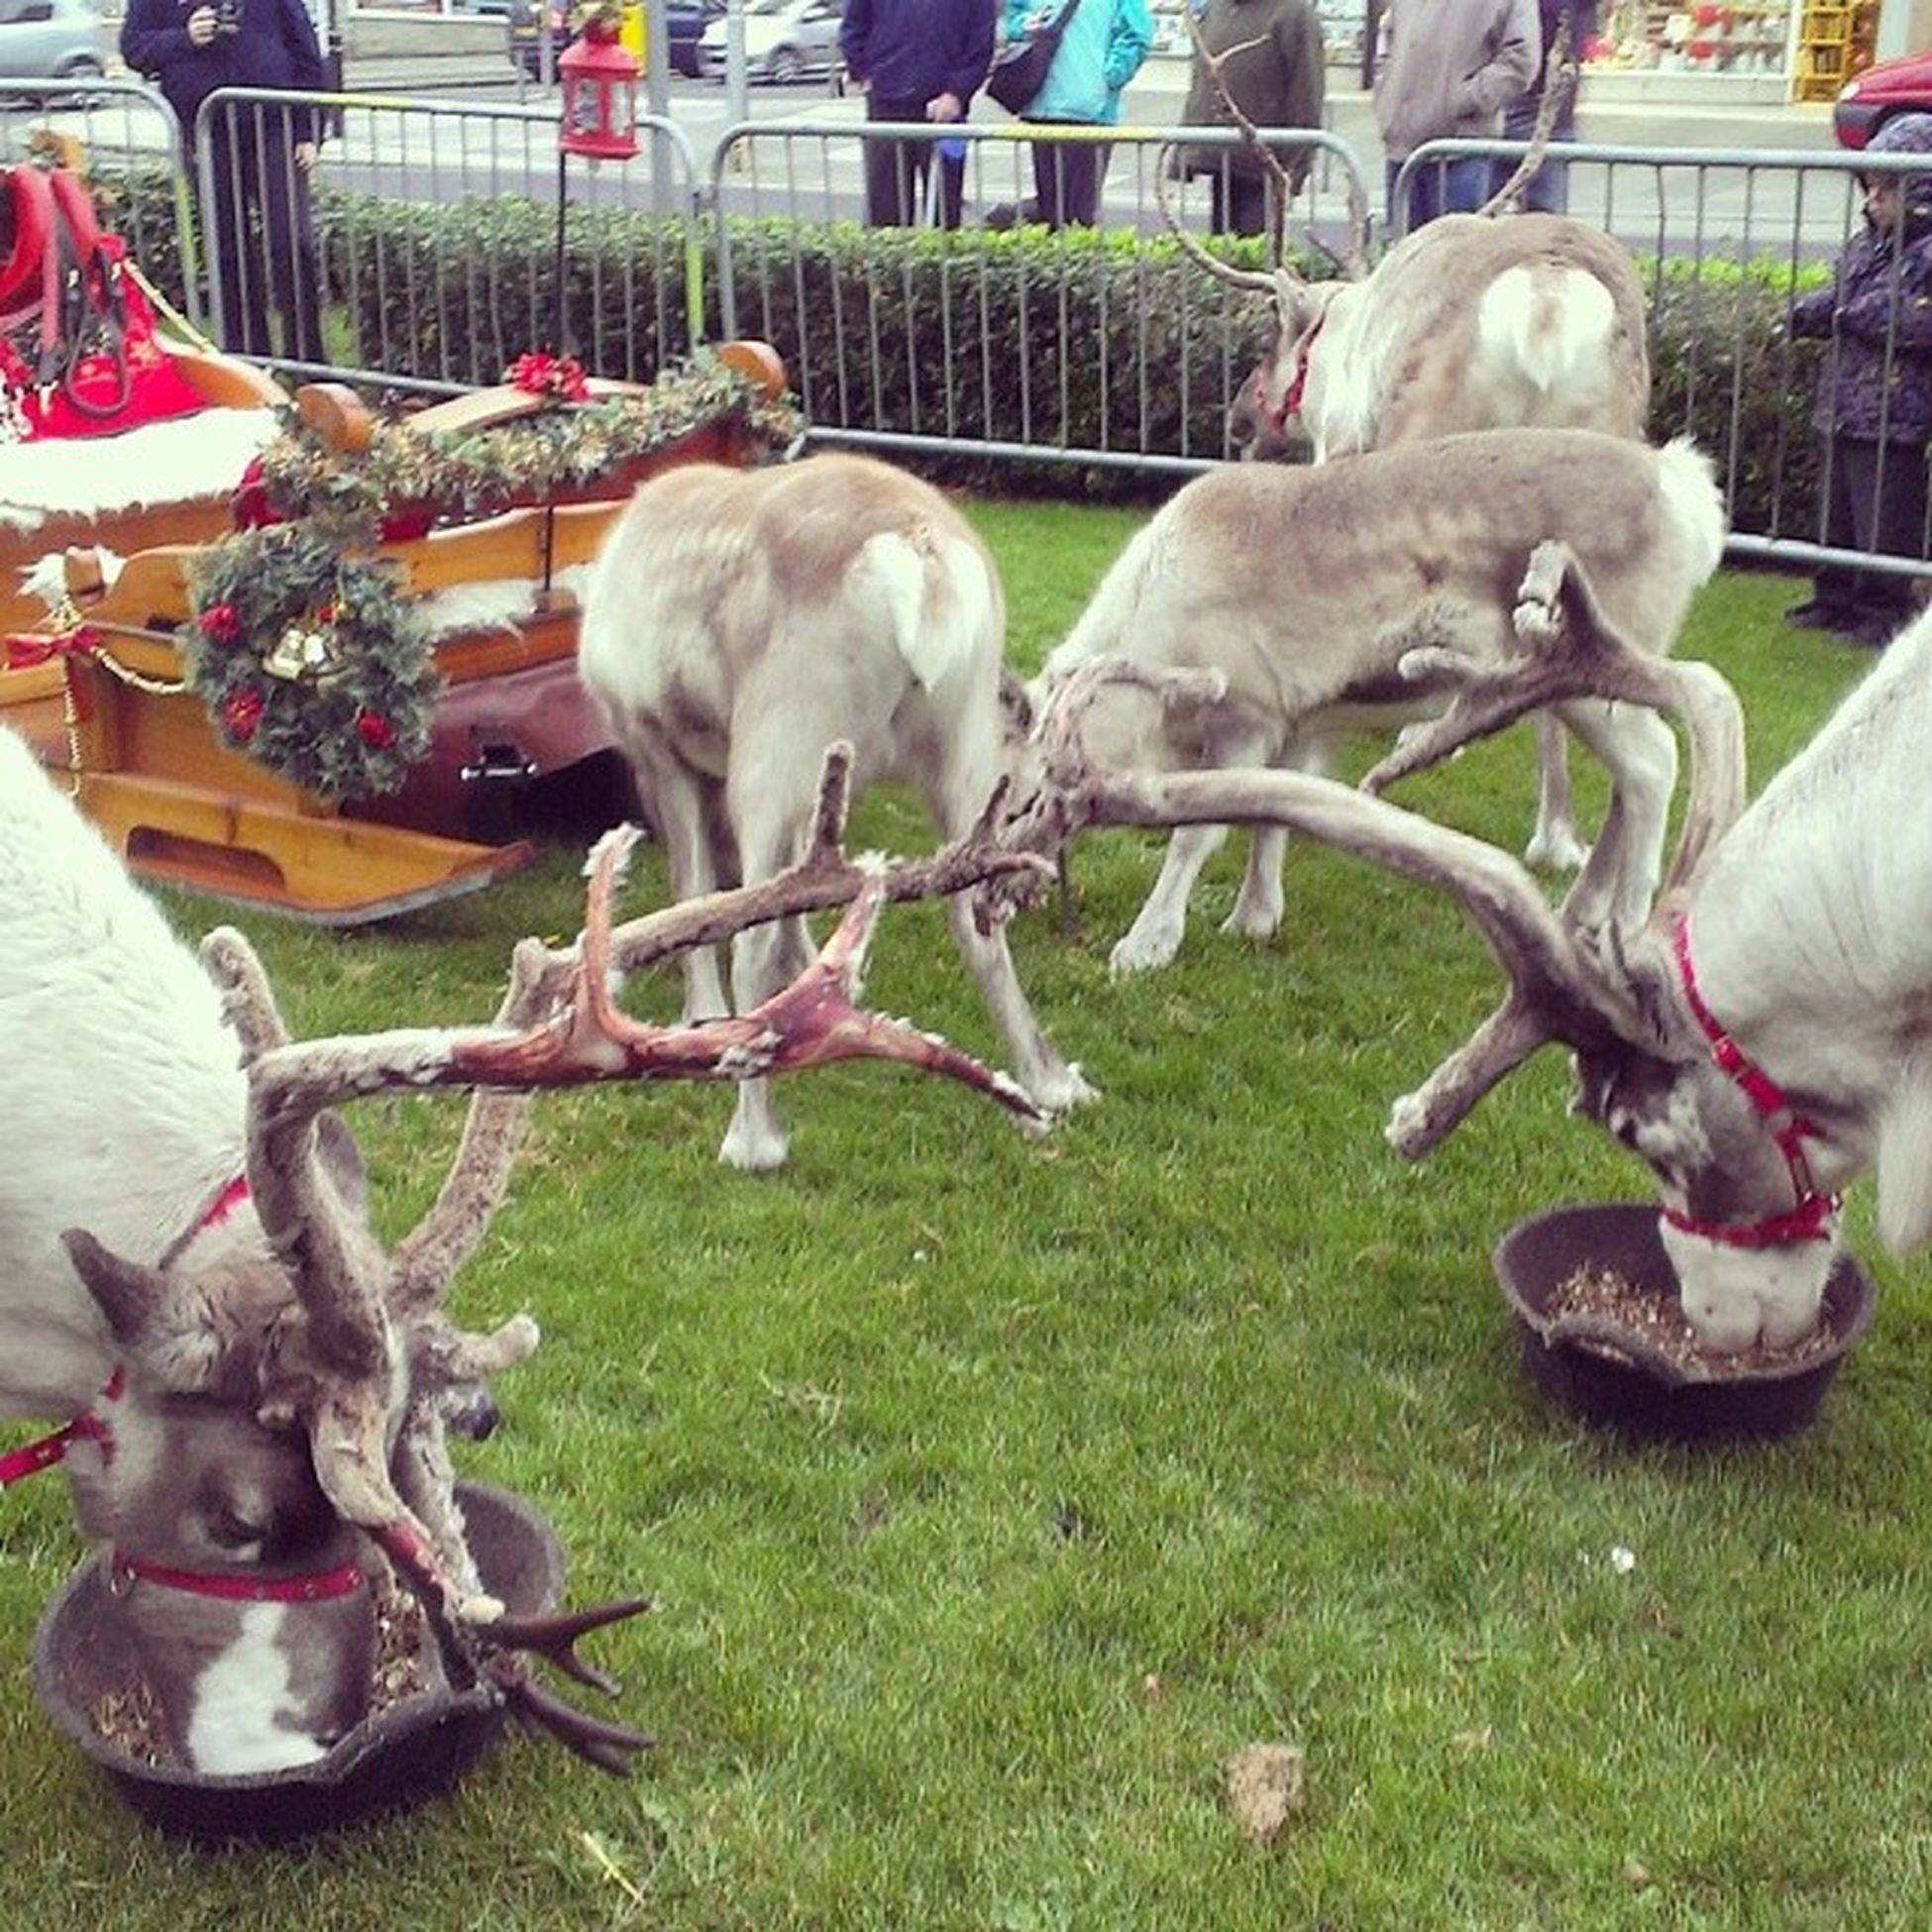 The Reindeer are in Newquay, but where's santa?